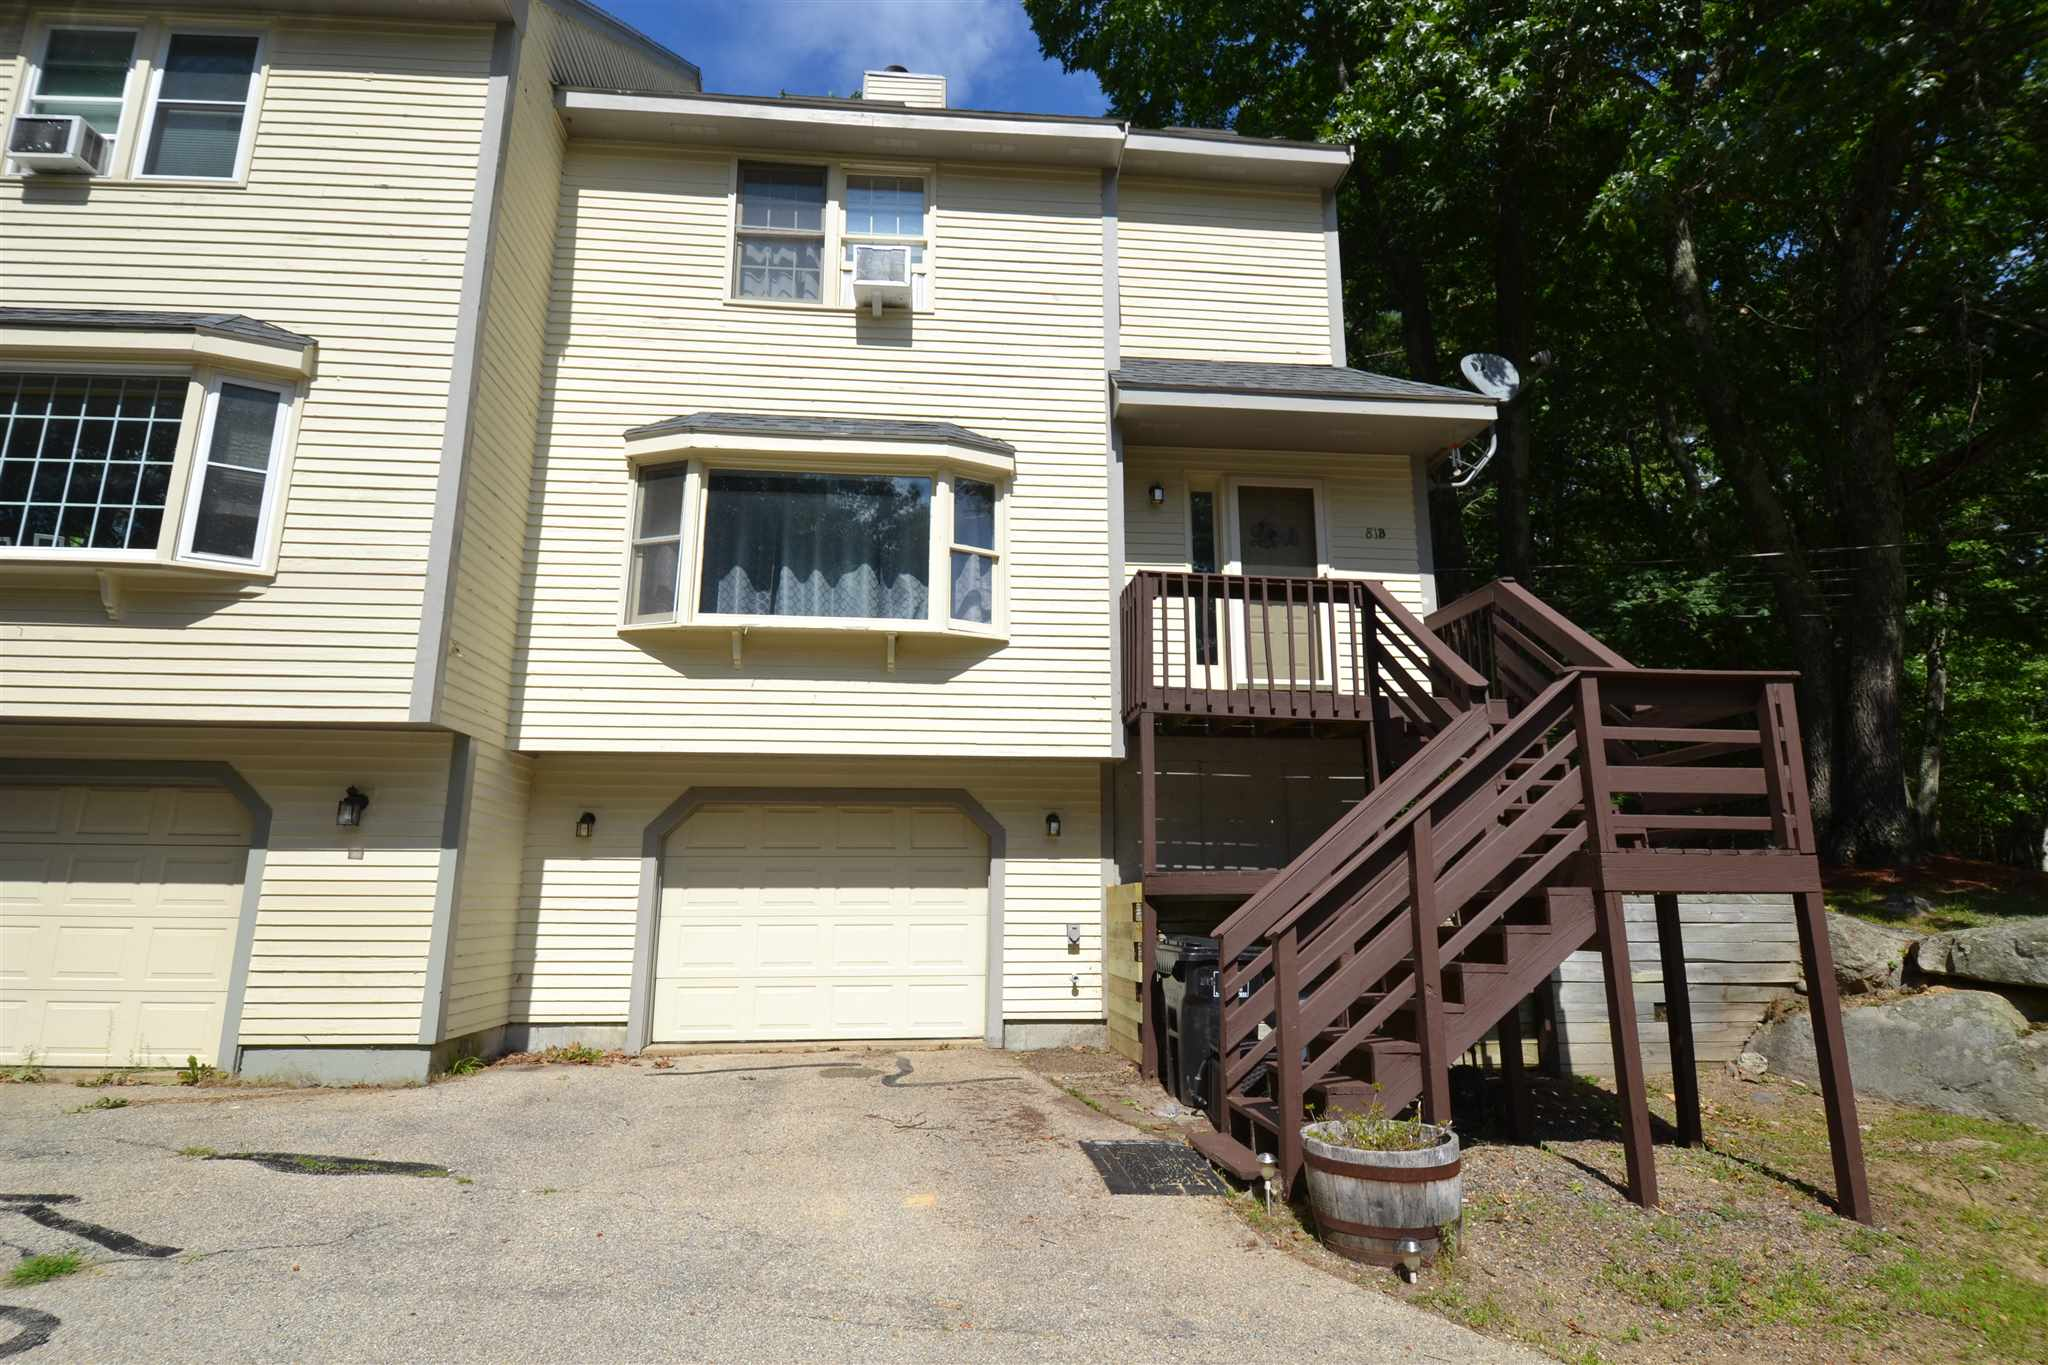 MLS 4821333: 81 Robinson Road-Unit B, Hudson NH